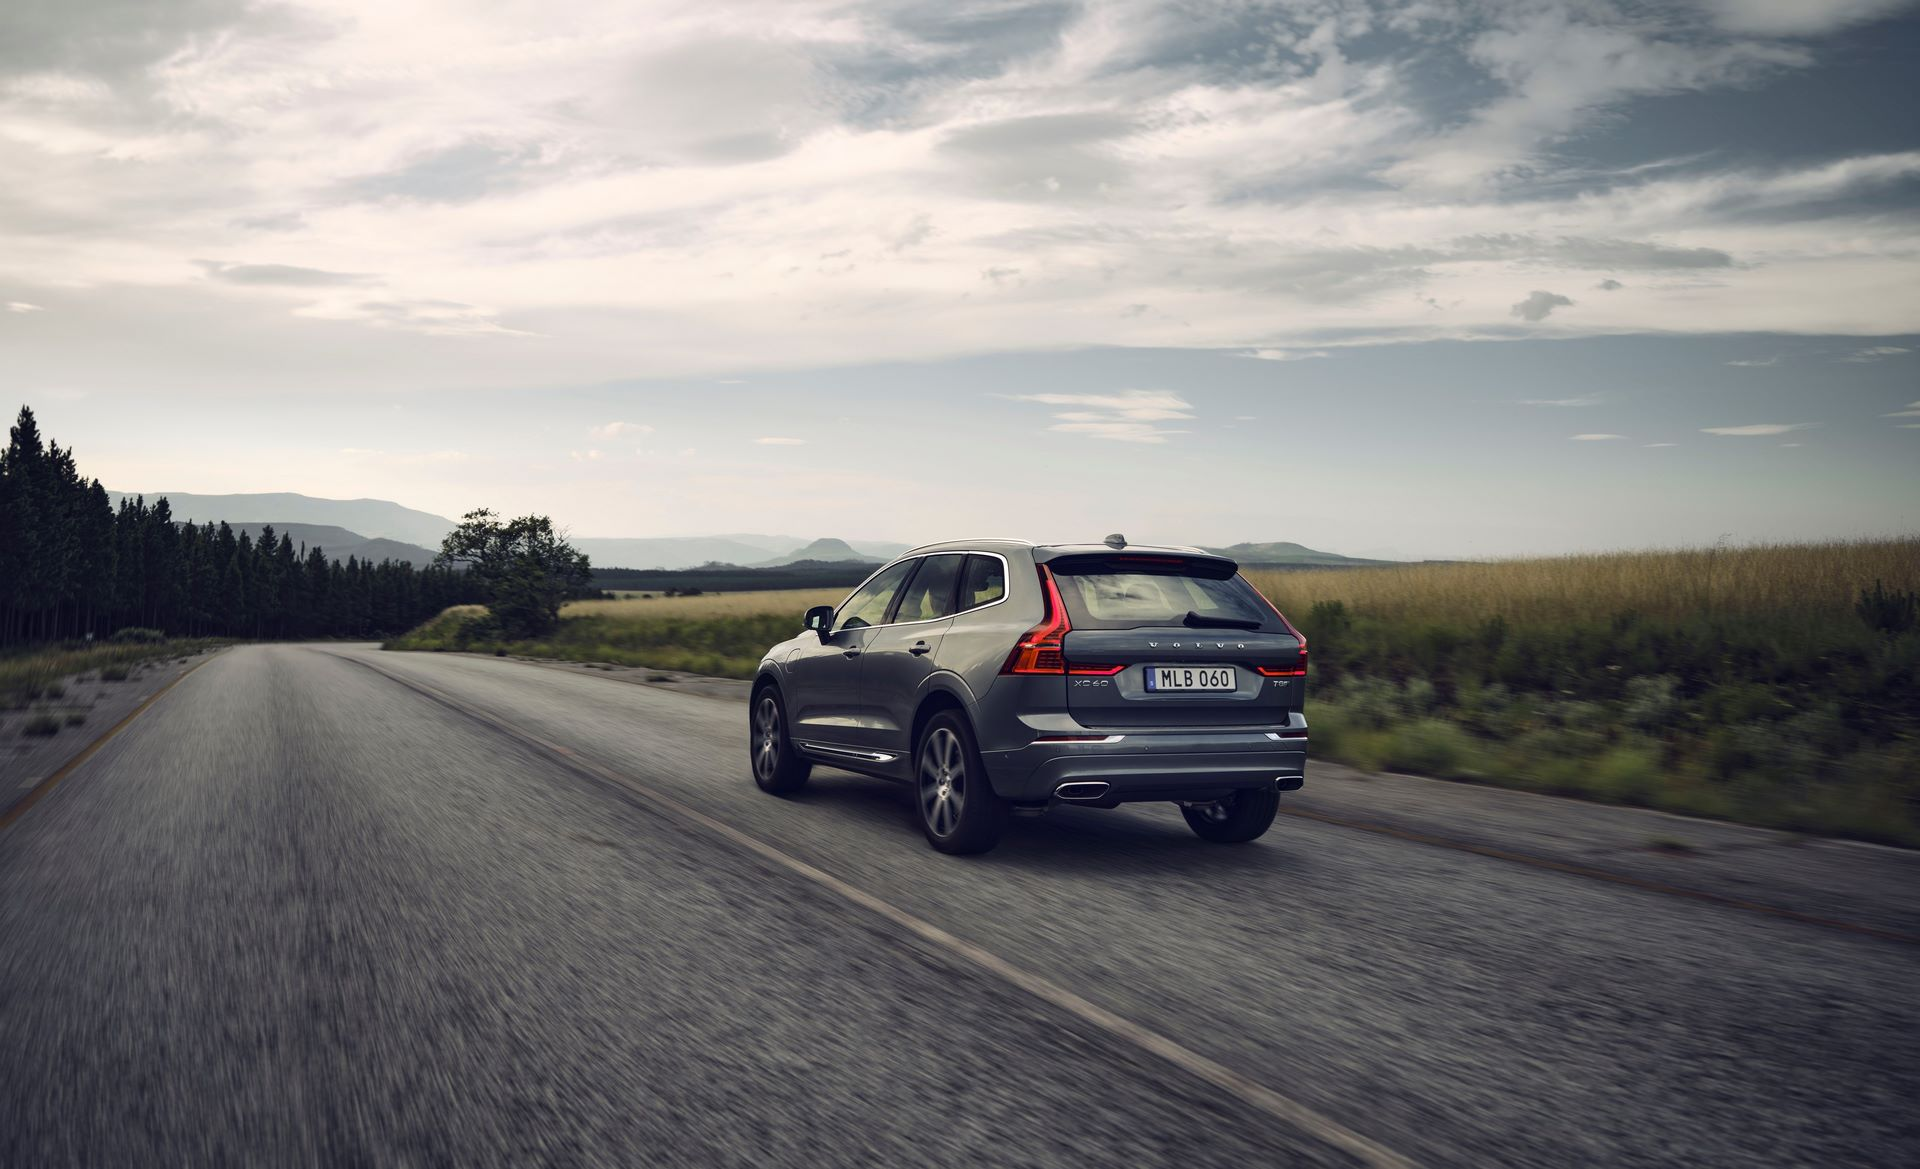 The refreshed Volvo XC60 T8 AWD in Osmium Grey metallic